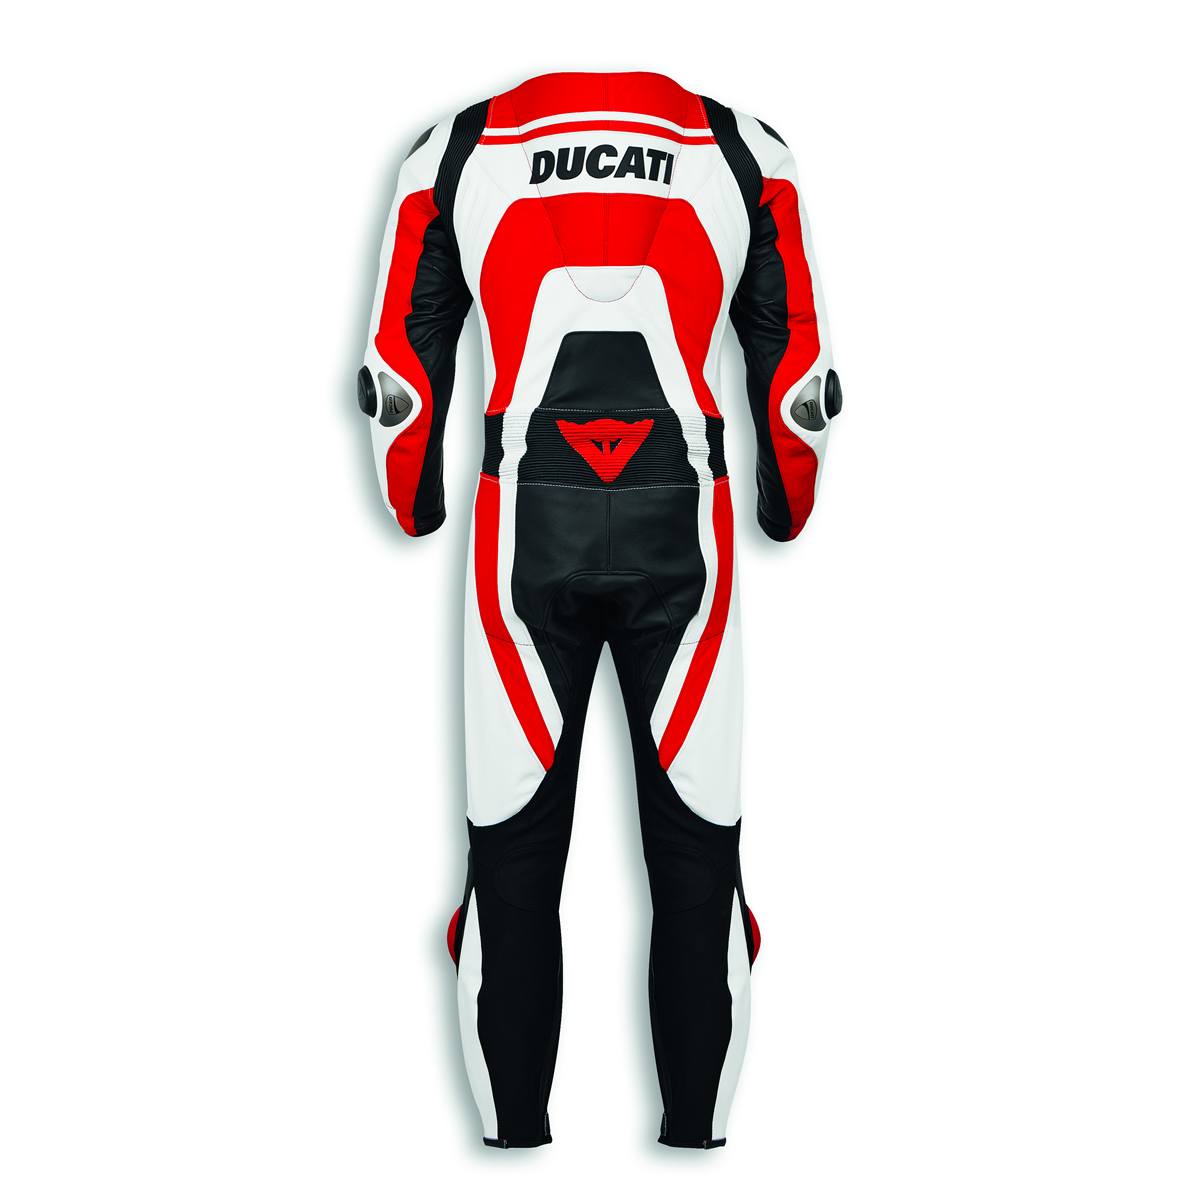 Ducati Corse C4 - Racing suit